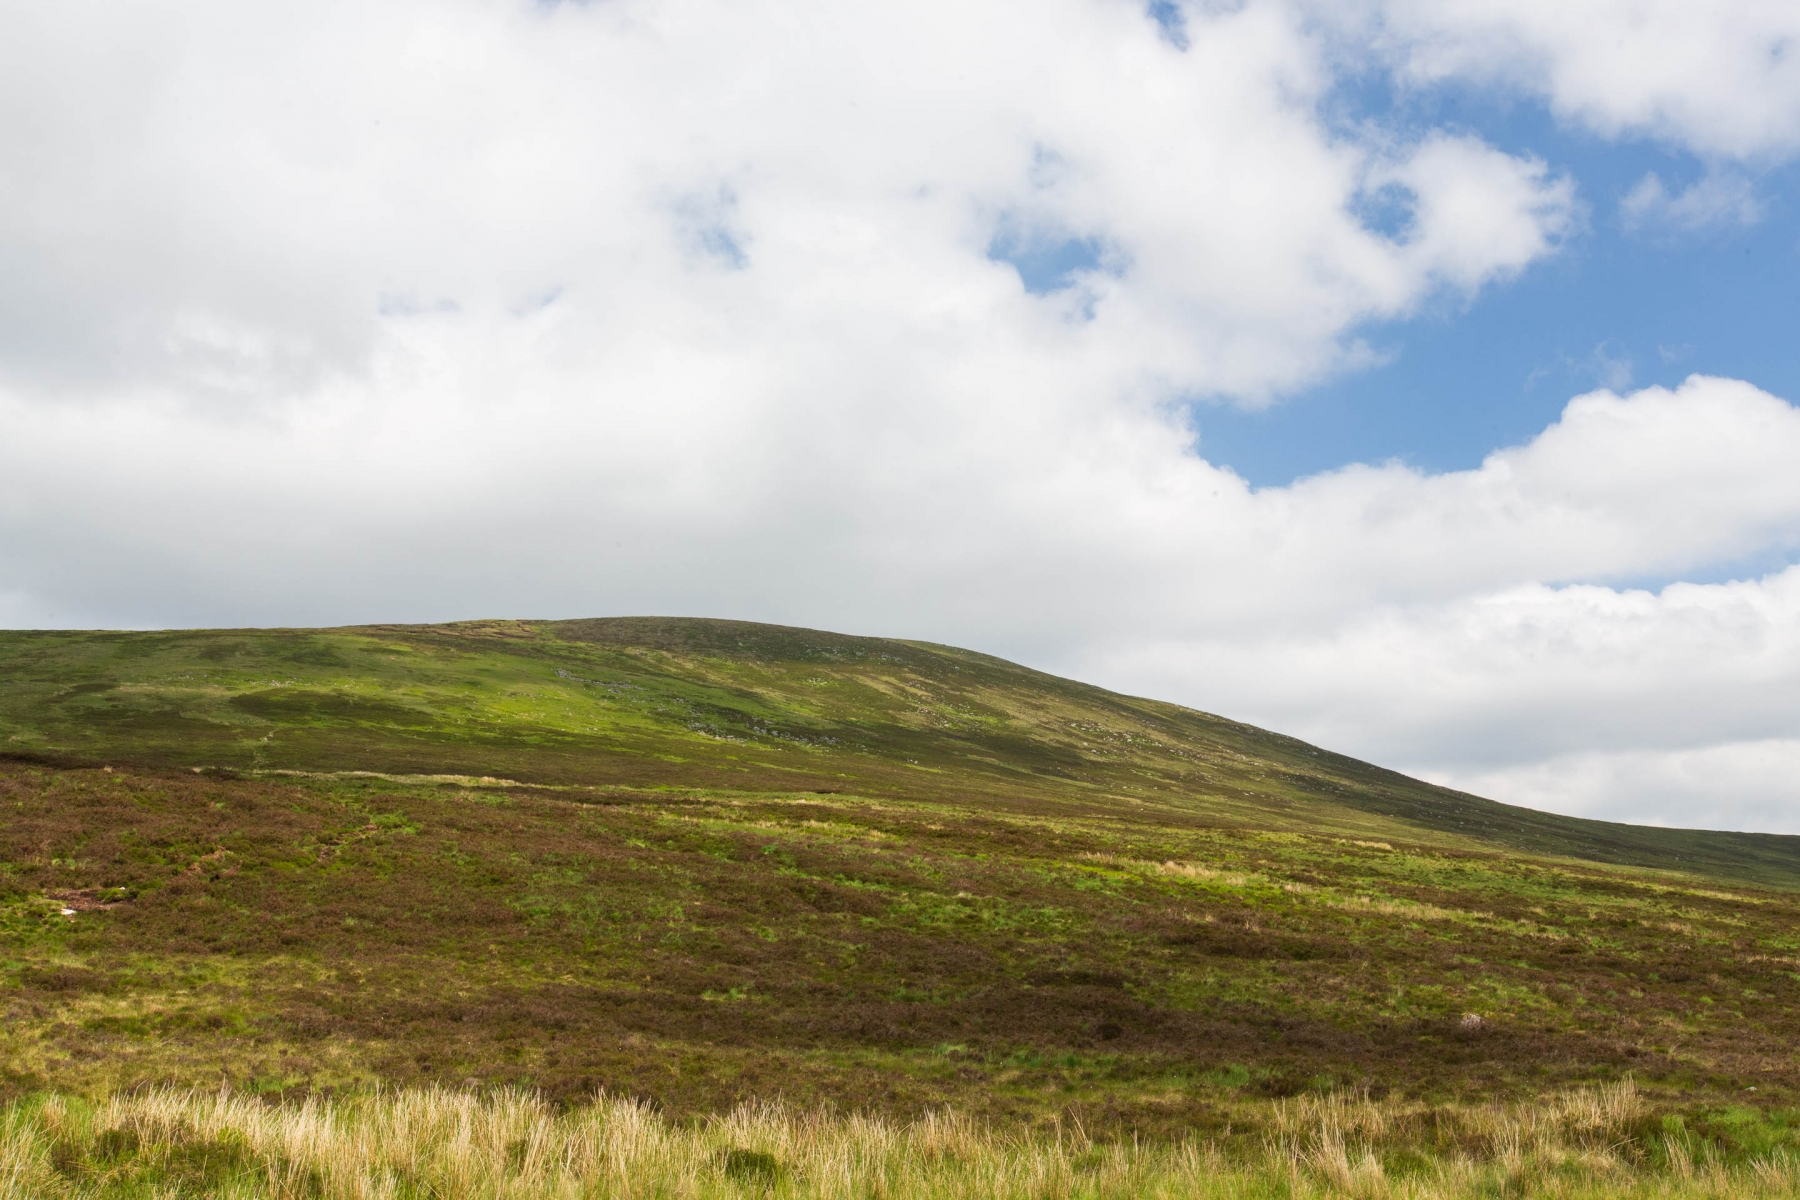 The Wicklow Mountains National Park is not to be missed if you are visiting Dublin. It's about 45 mins South of Dublin and offers some spectacular views of the Wicklow Mountains.